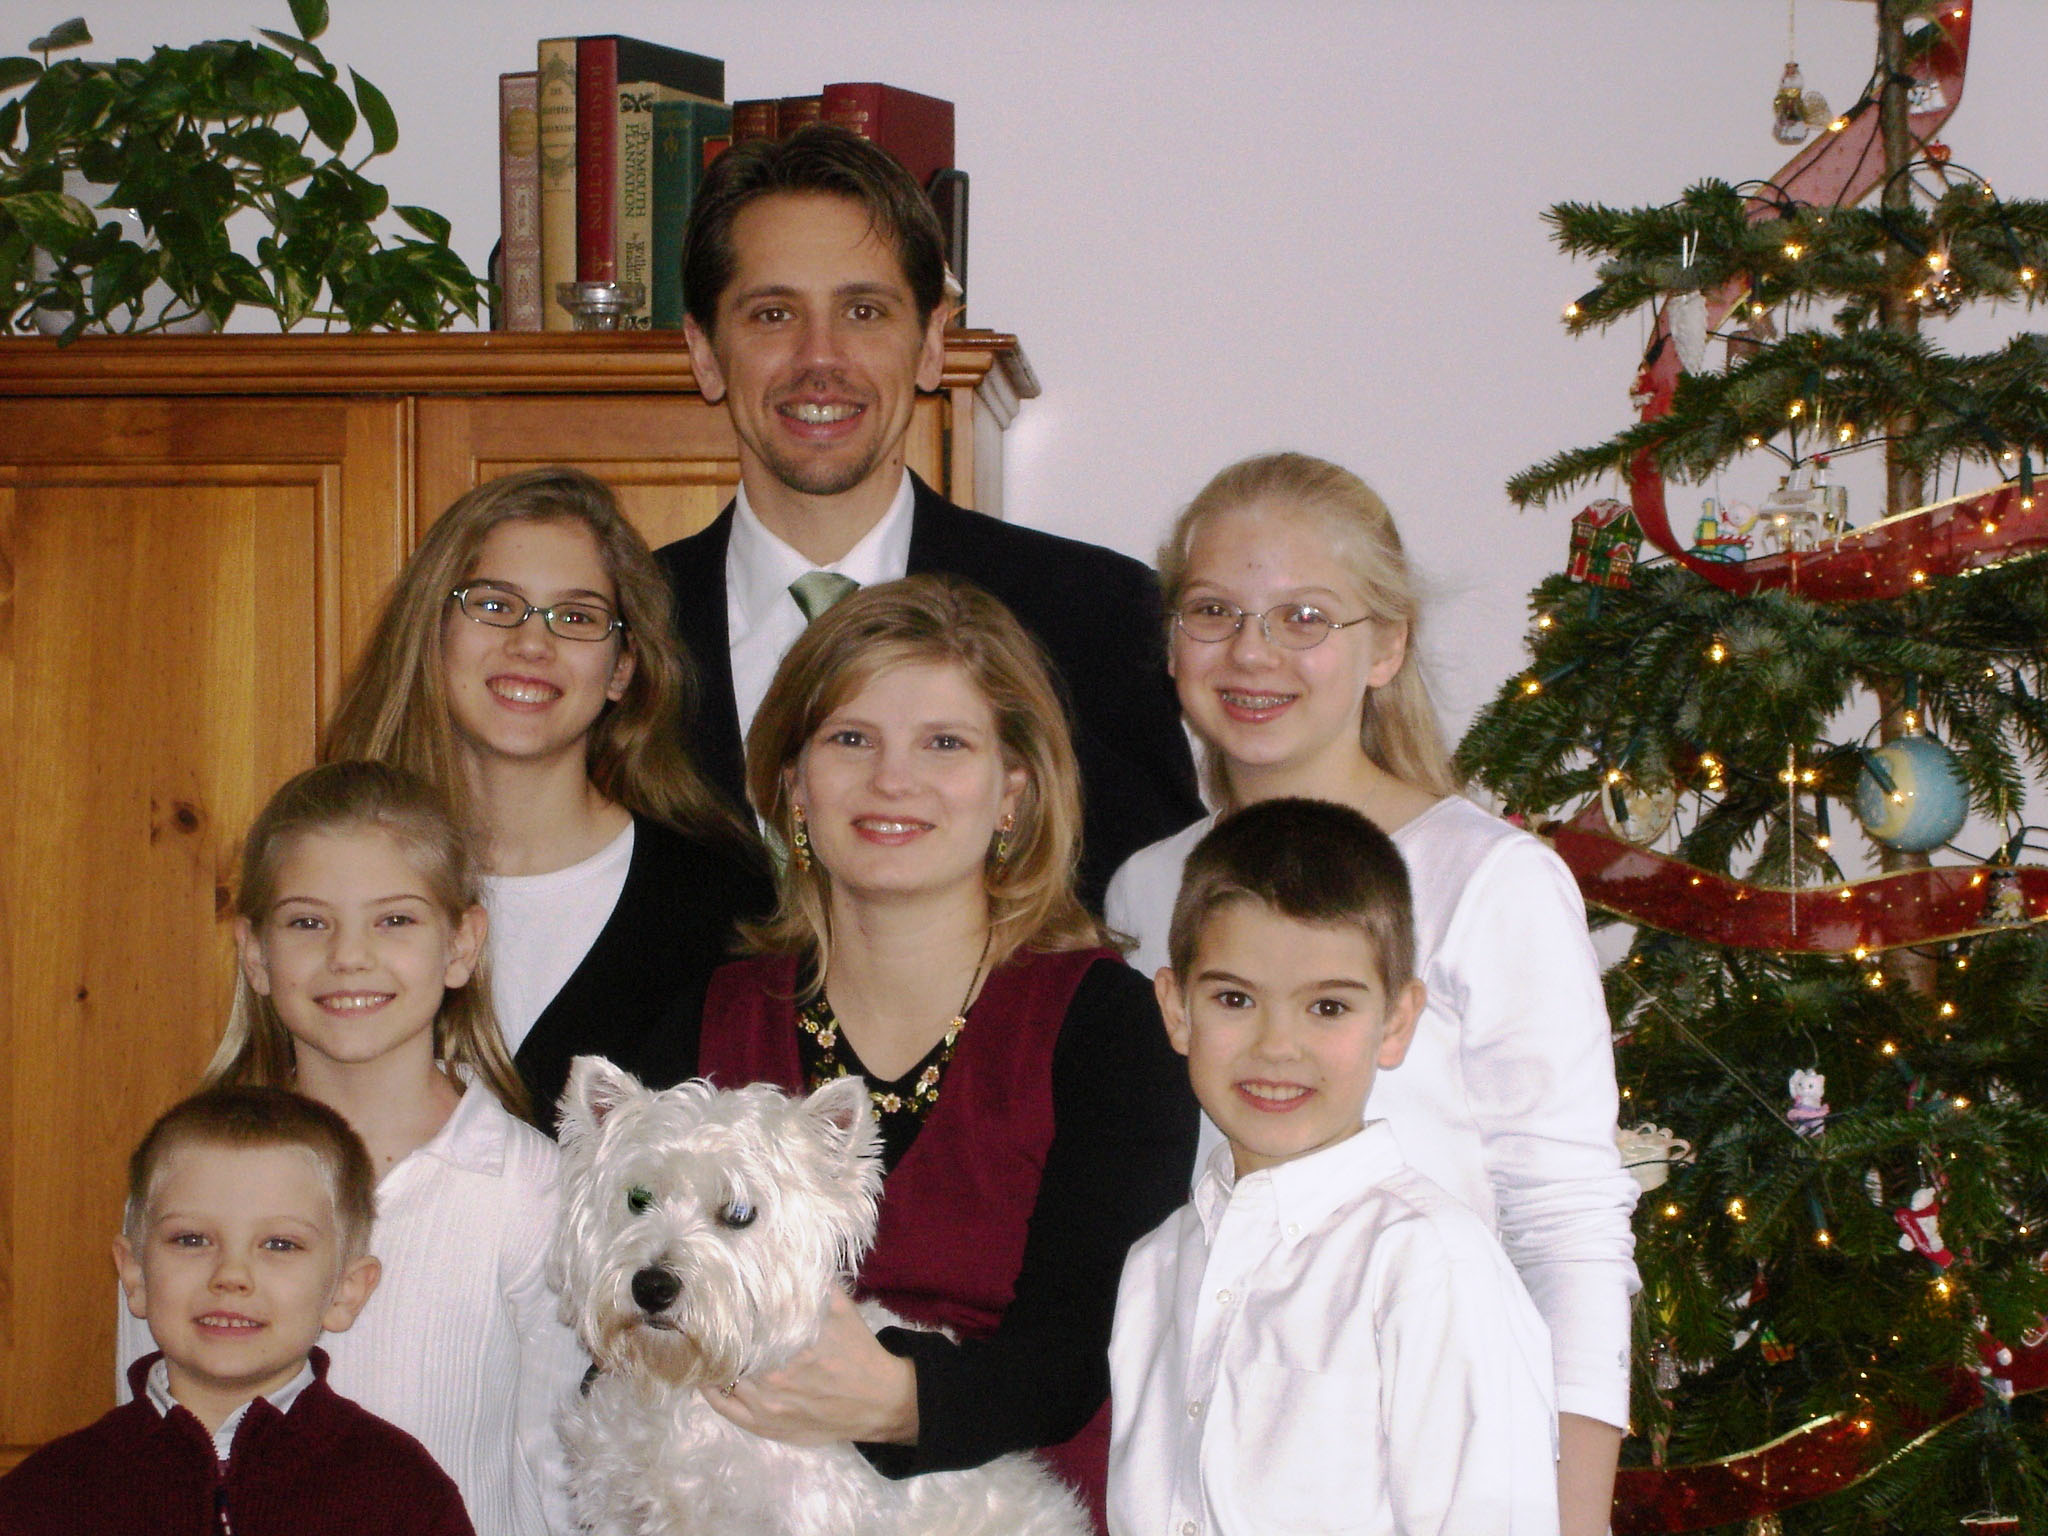 Bonin family photo Dec 2006